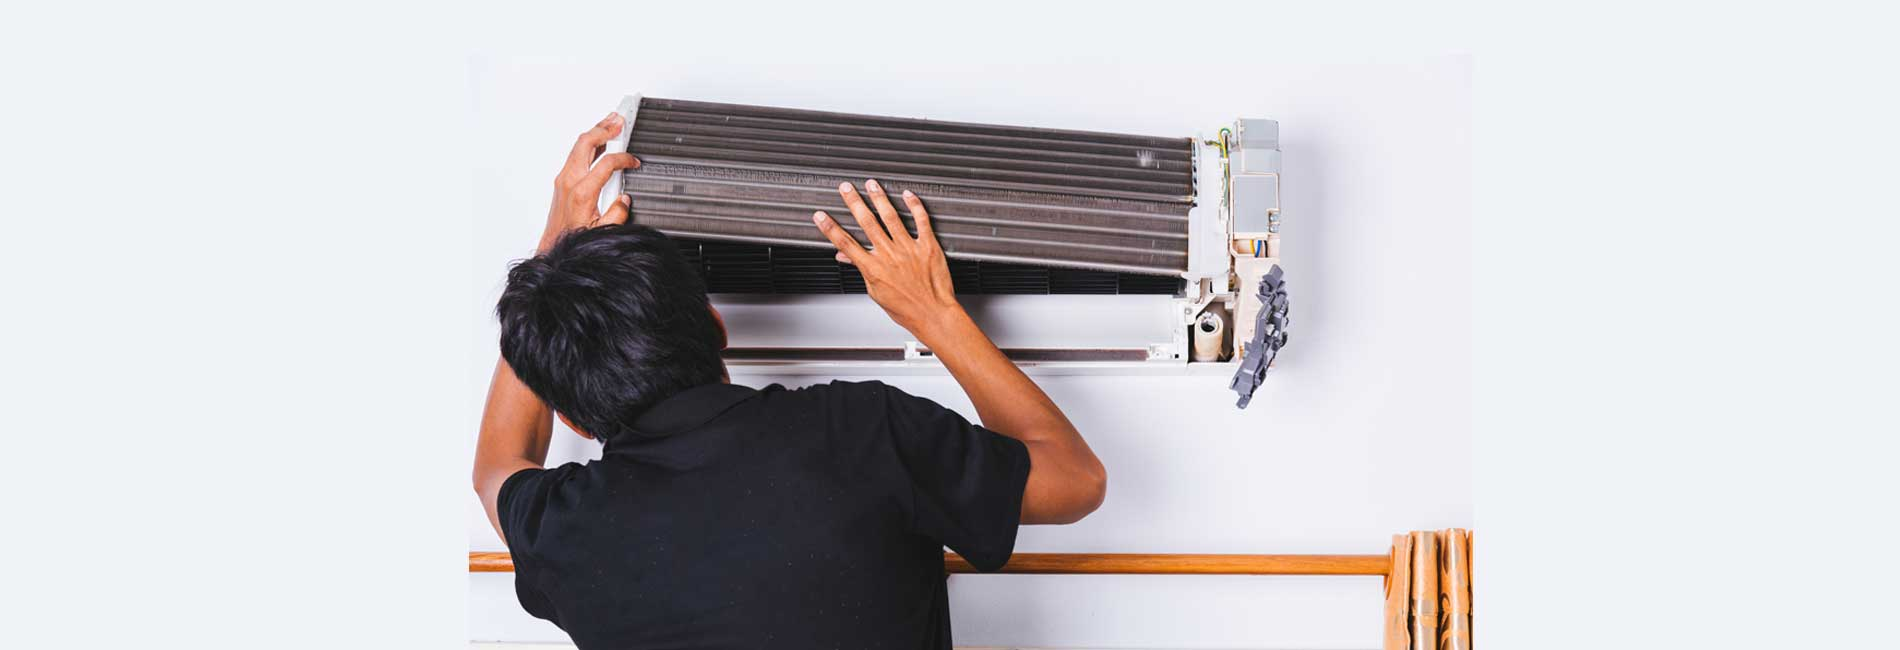 Hitachi AC Installation in Kattupakkam